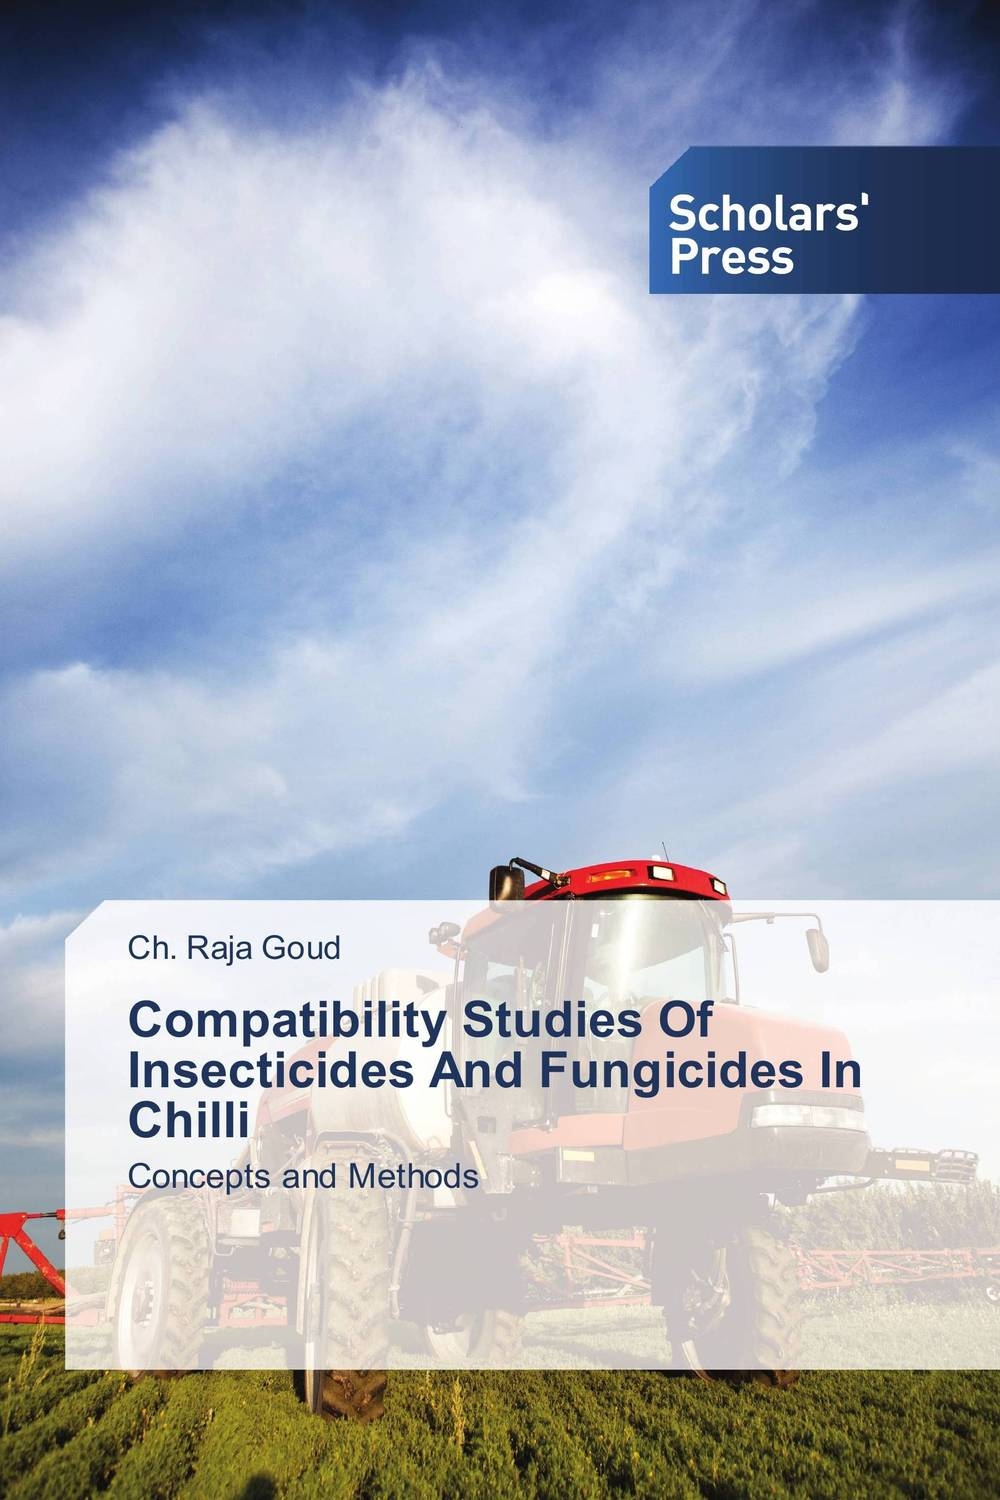 Compatibility Studies Of Insecticides And Fungicides In Chilli narendra sharma satyakumari sharma and n s bhadauria integrated pest management in brinjal